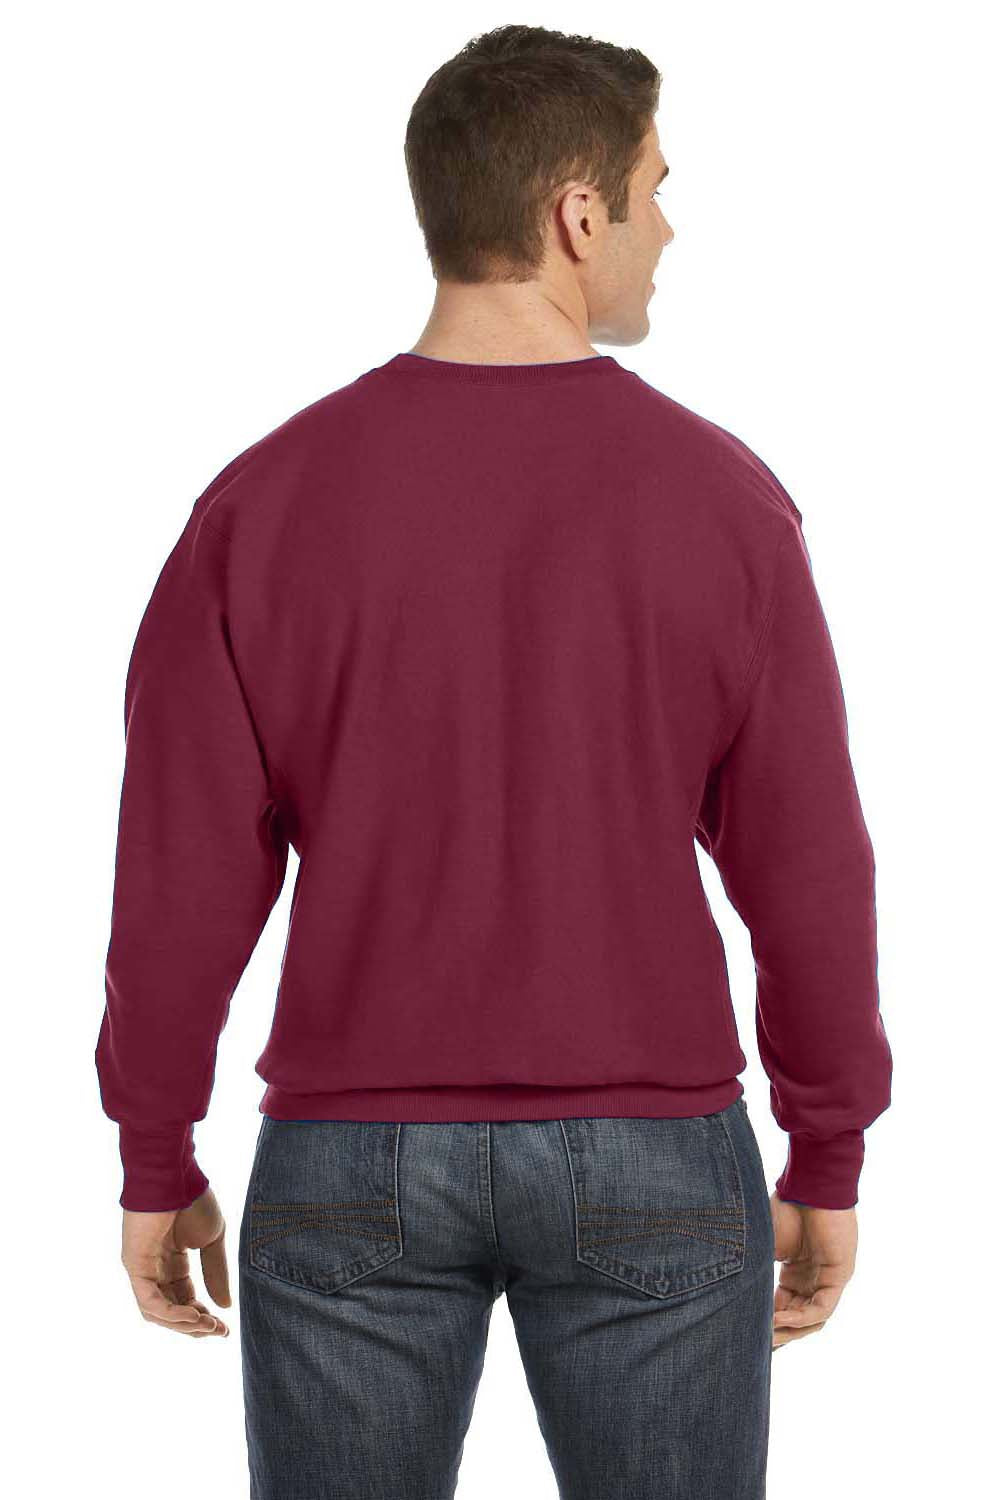 Champion S1049 Mens Crewneck Sweatshirt Maroon Back